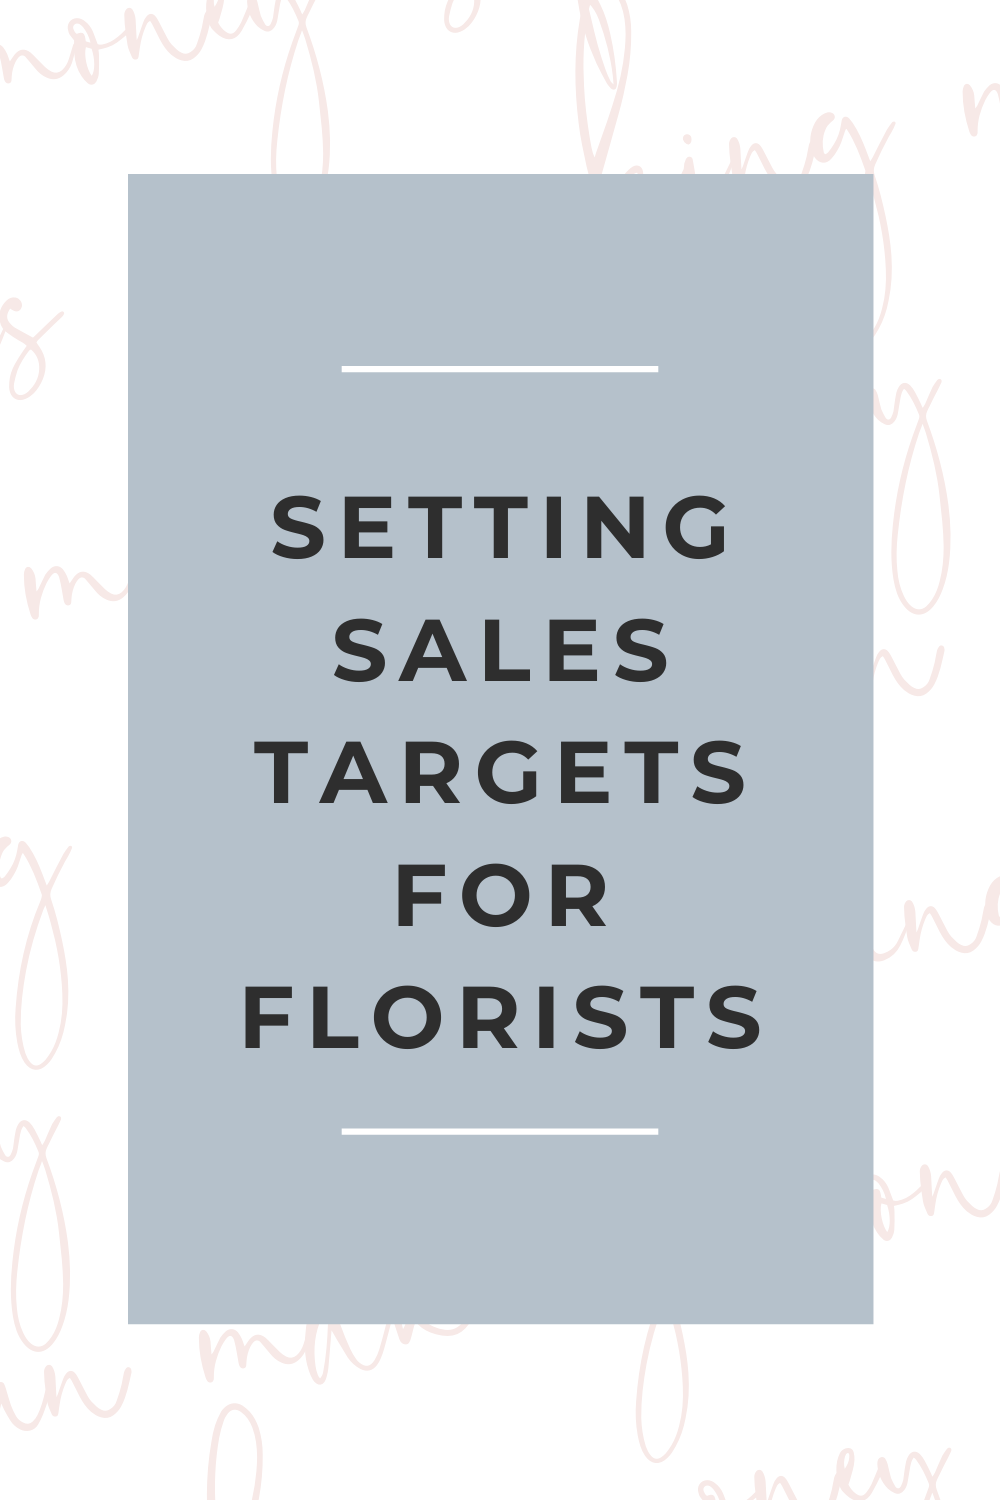 podcast for floral designers business and flowers (20)